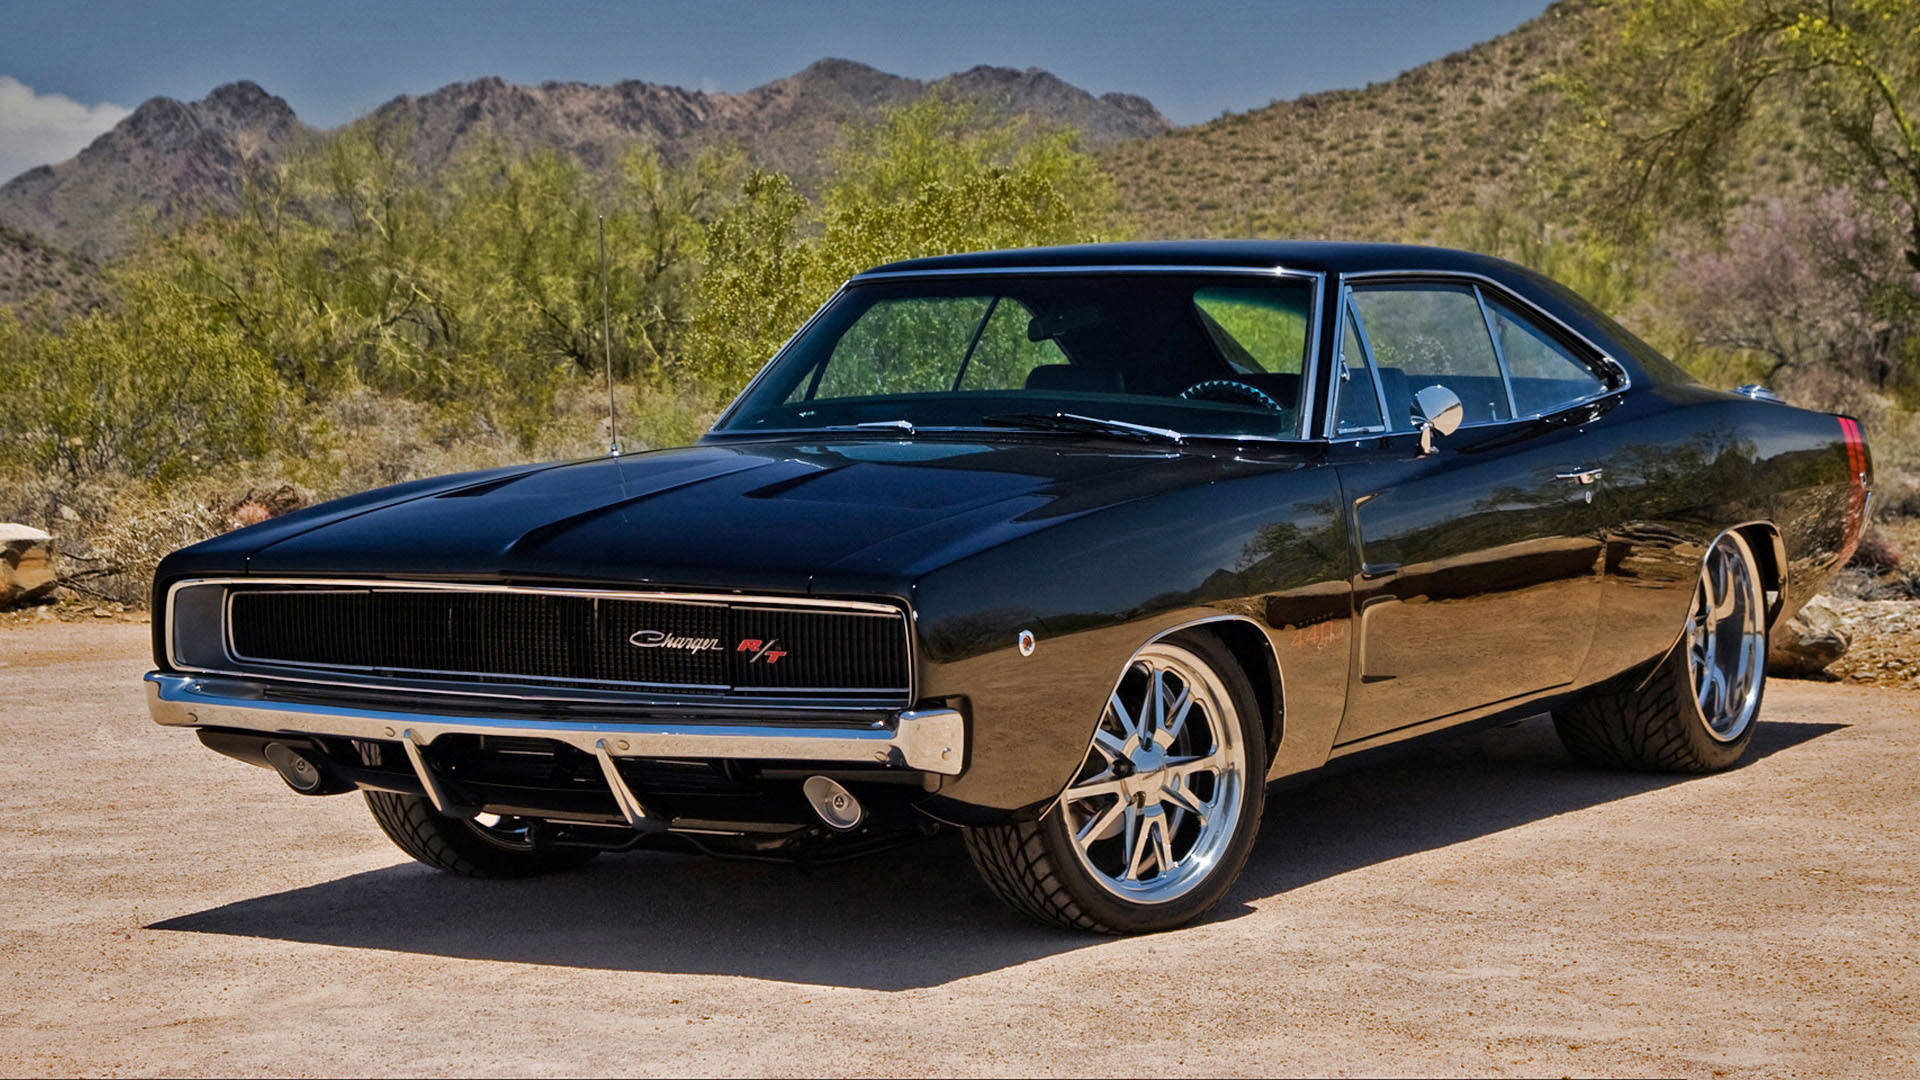 Dodge Charger R/T #19